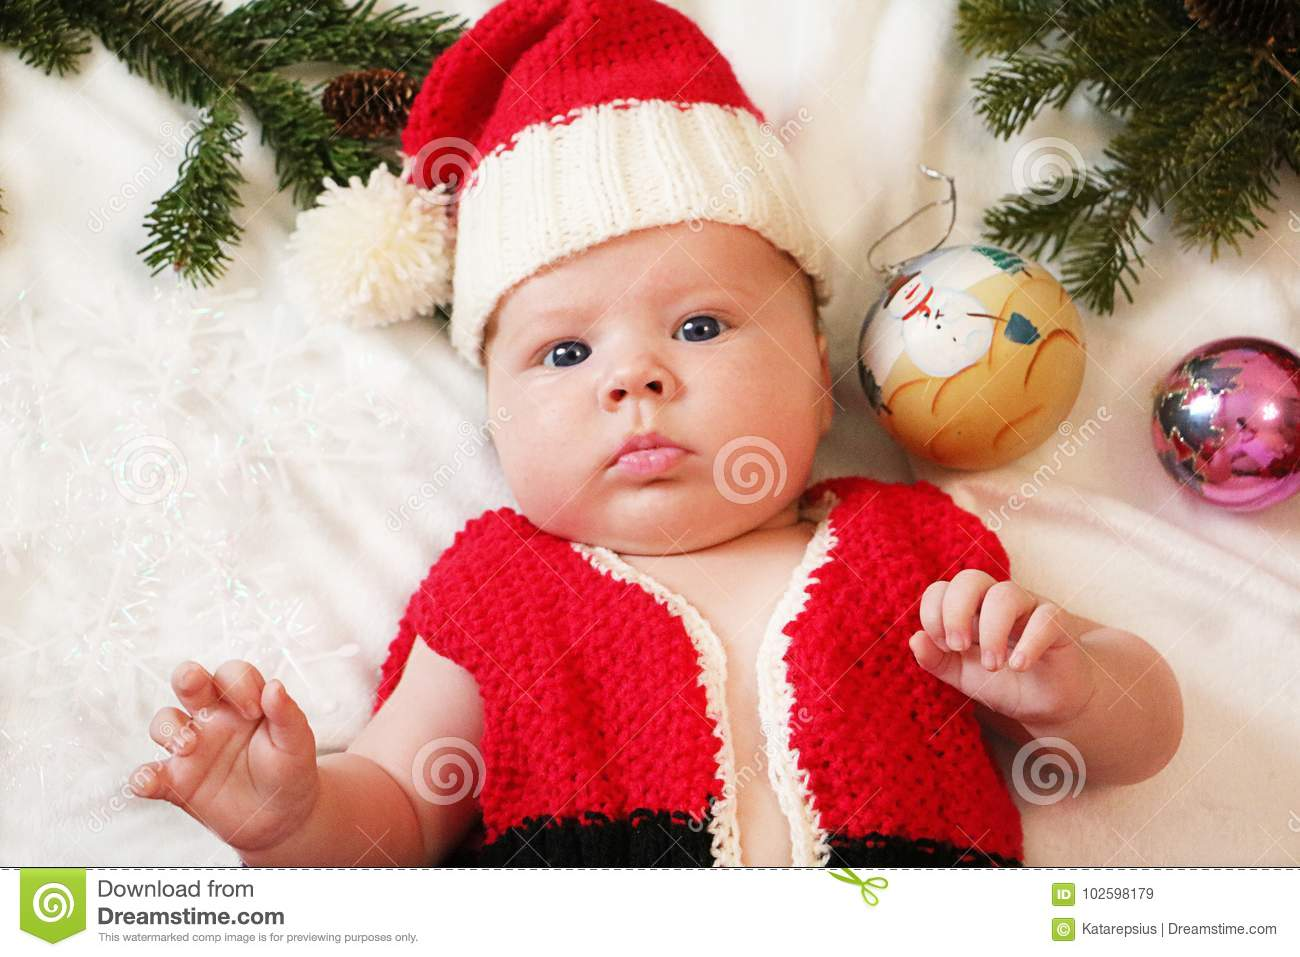 Baby first christmas. Beautiful little baby in Santa hat celebrates  Christmas. New Year`s holidays. Baby with santa hat inside tinsel 274f5652408d